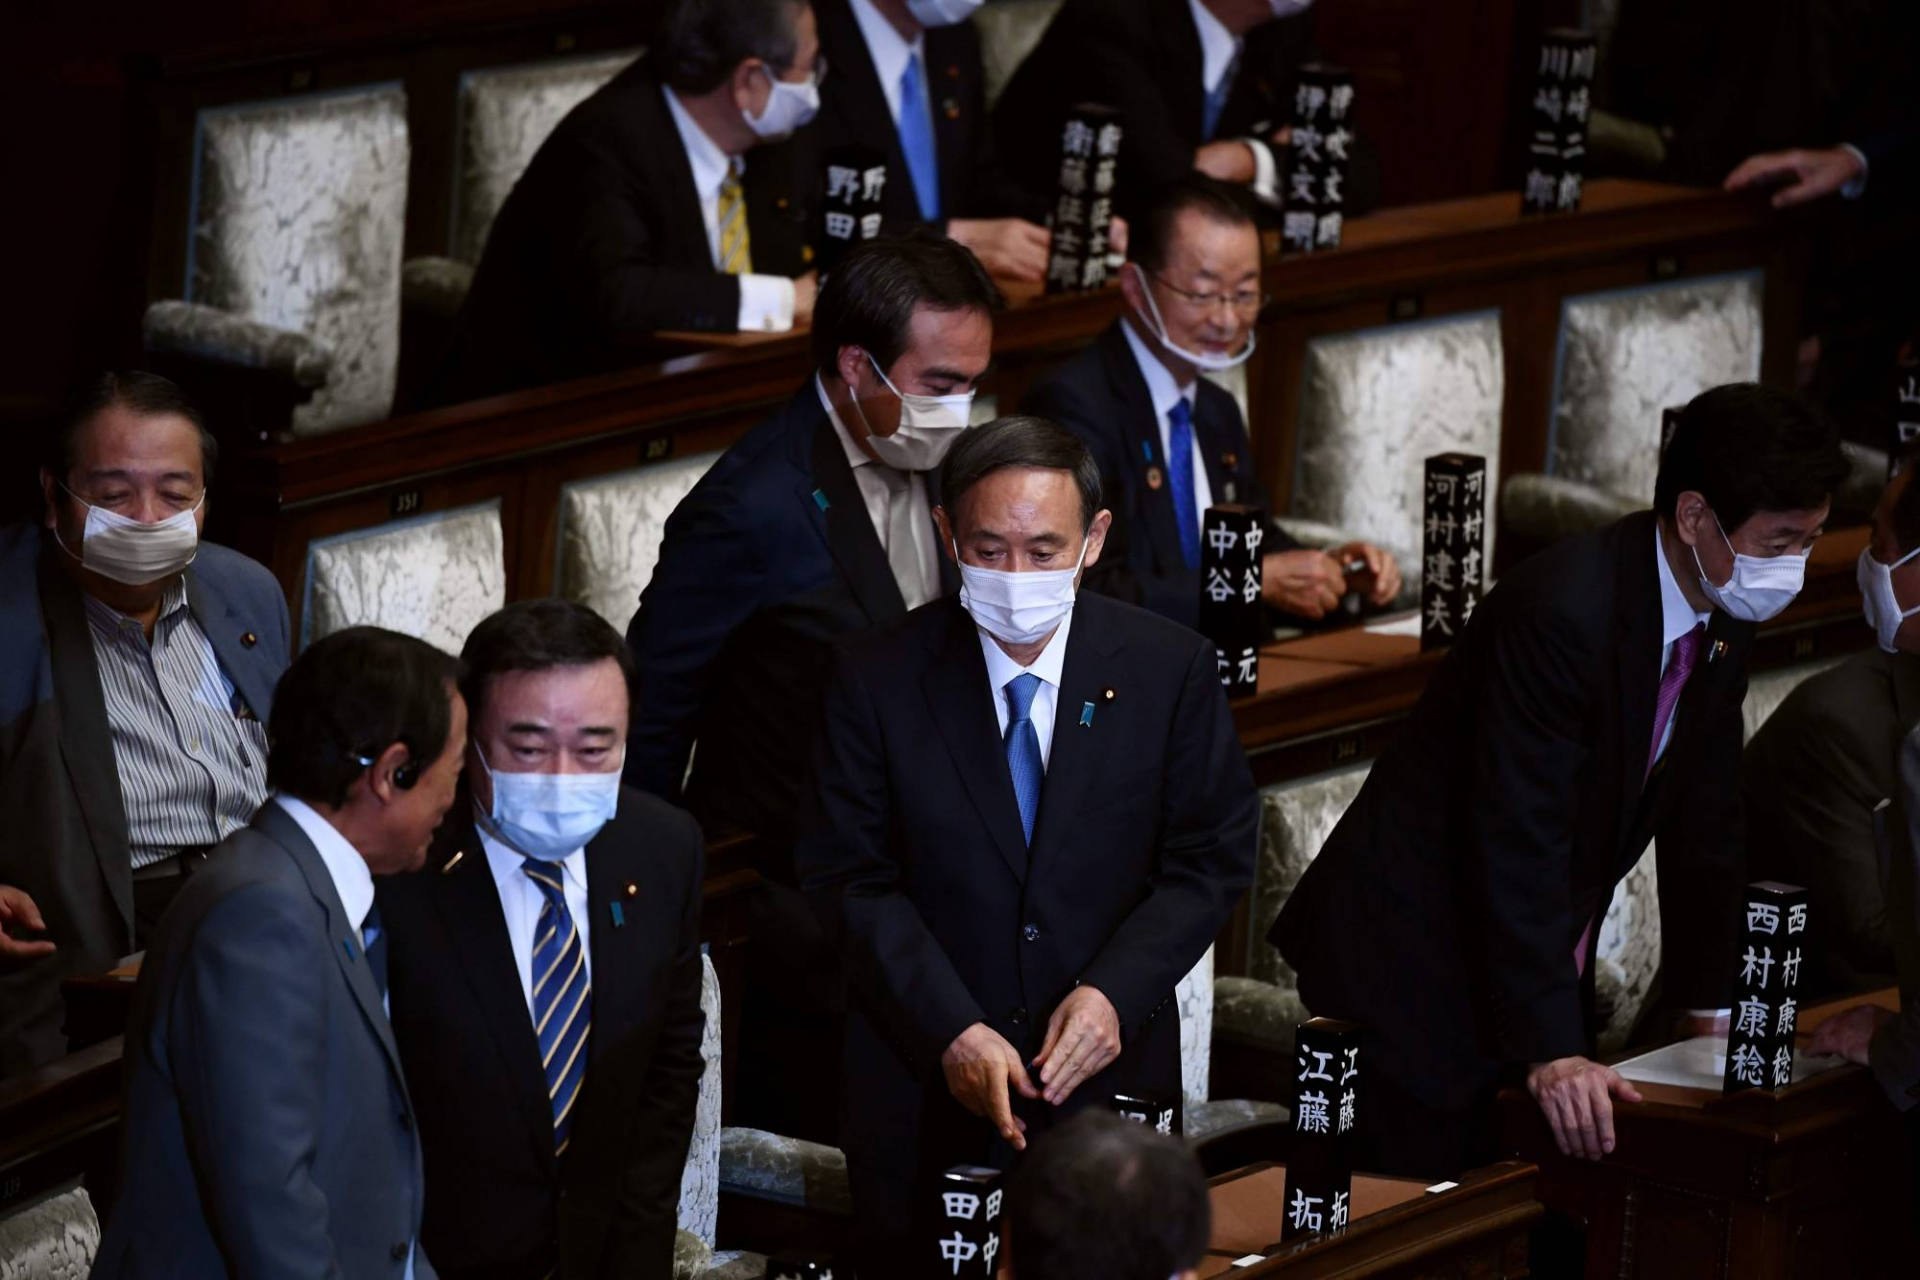 yoshihide suga officially named as japans new prime minister replacing shinzo abe